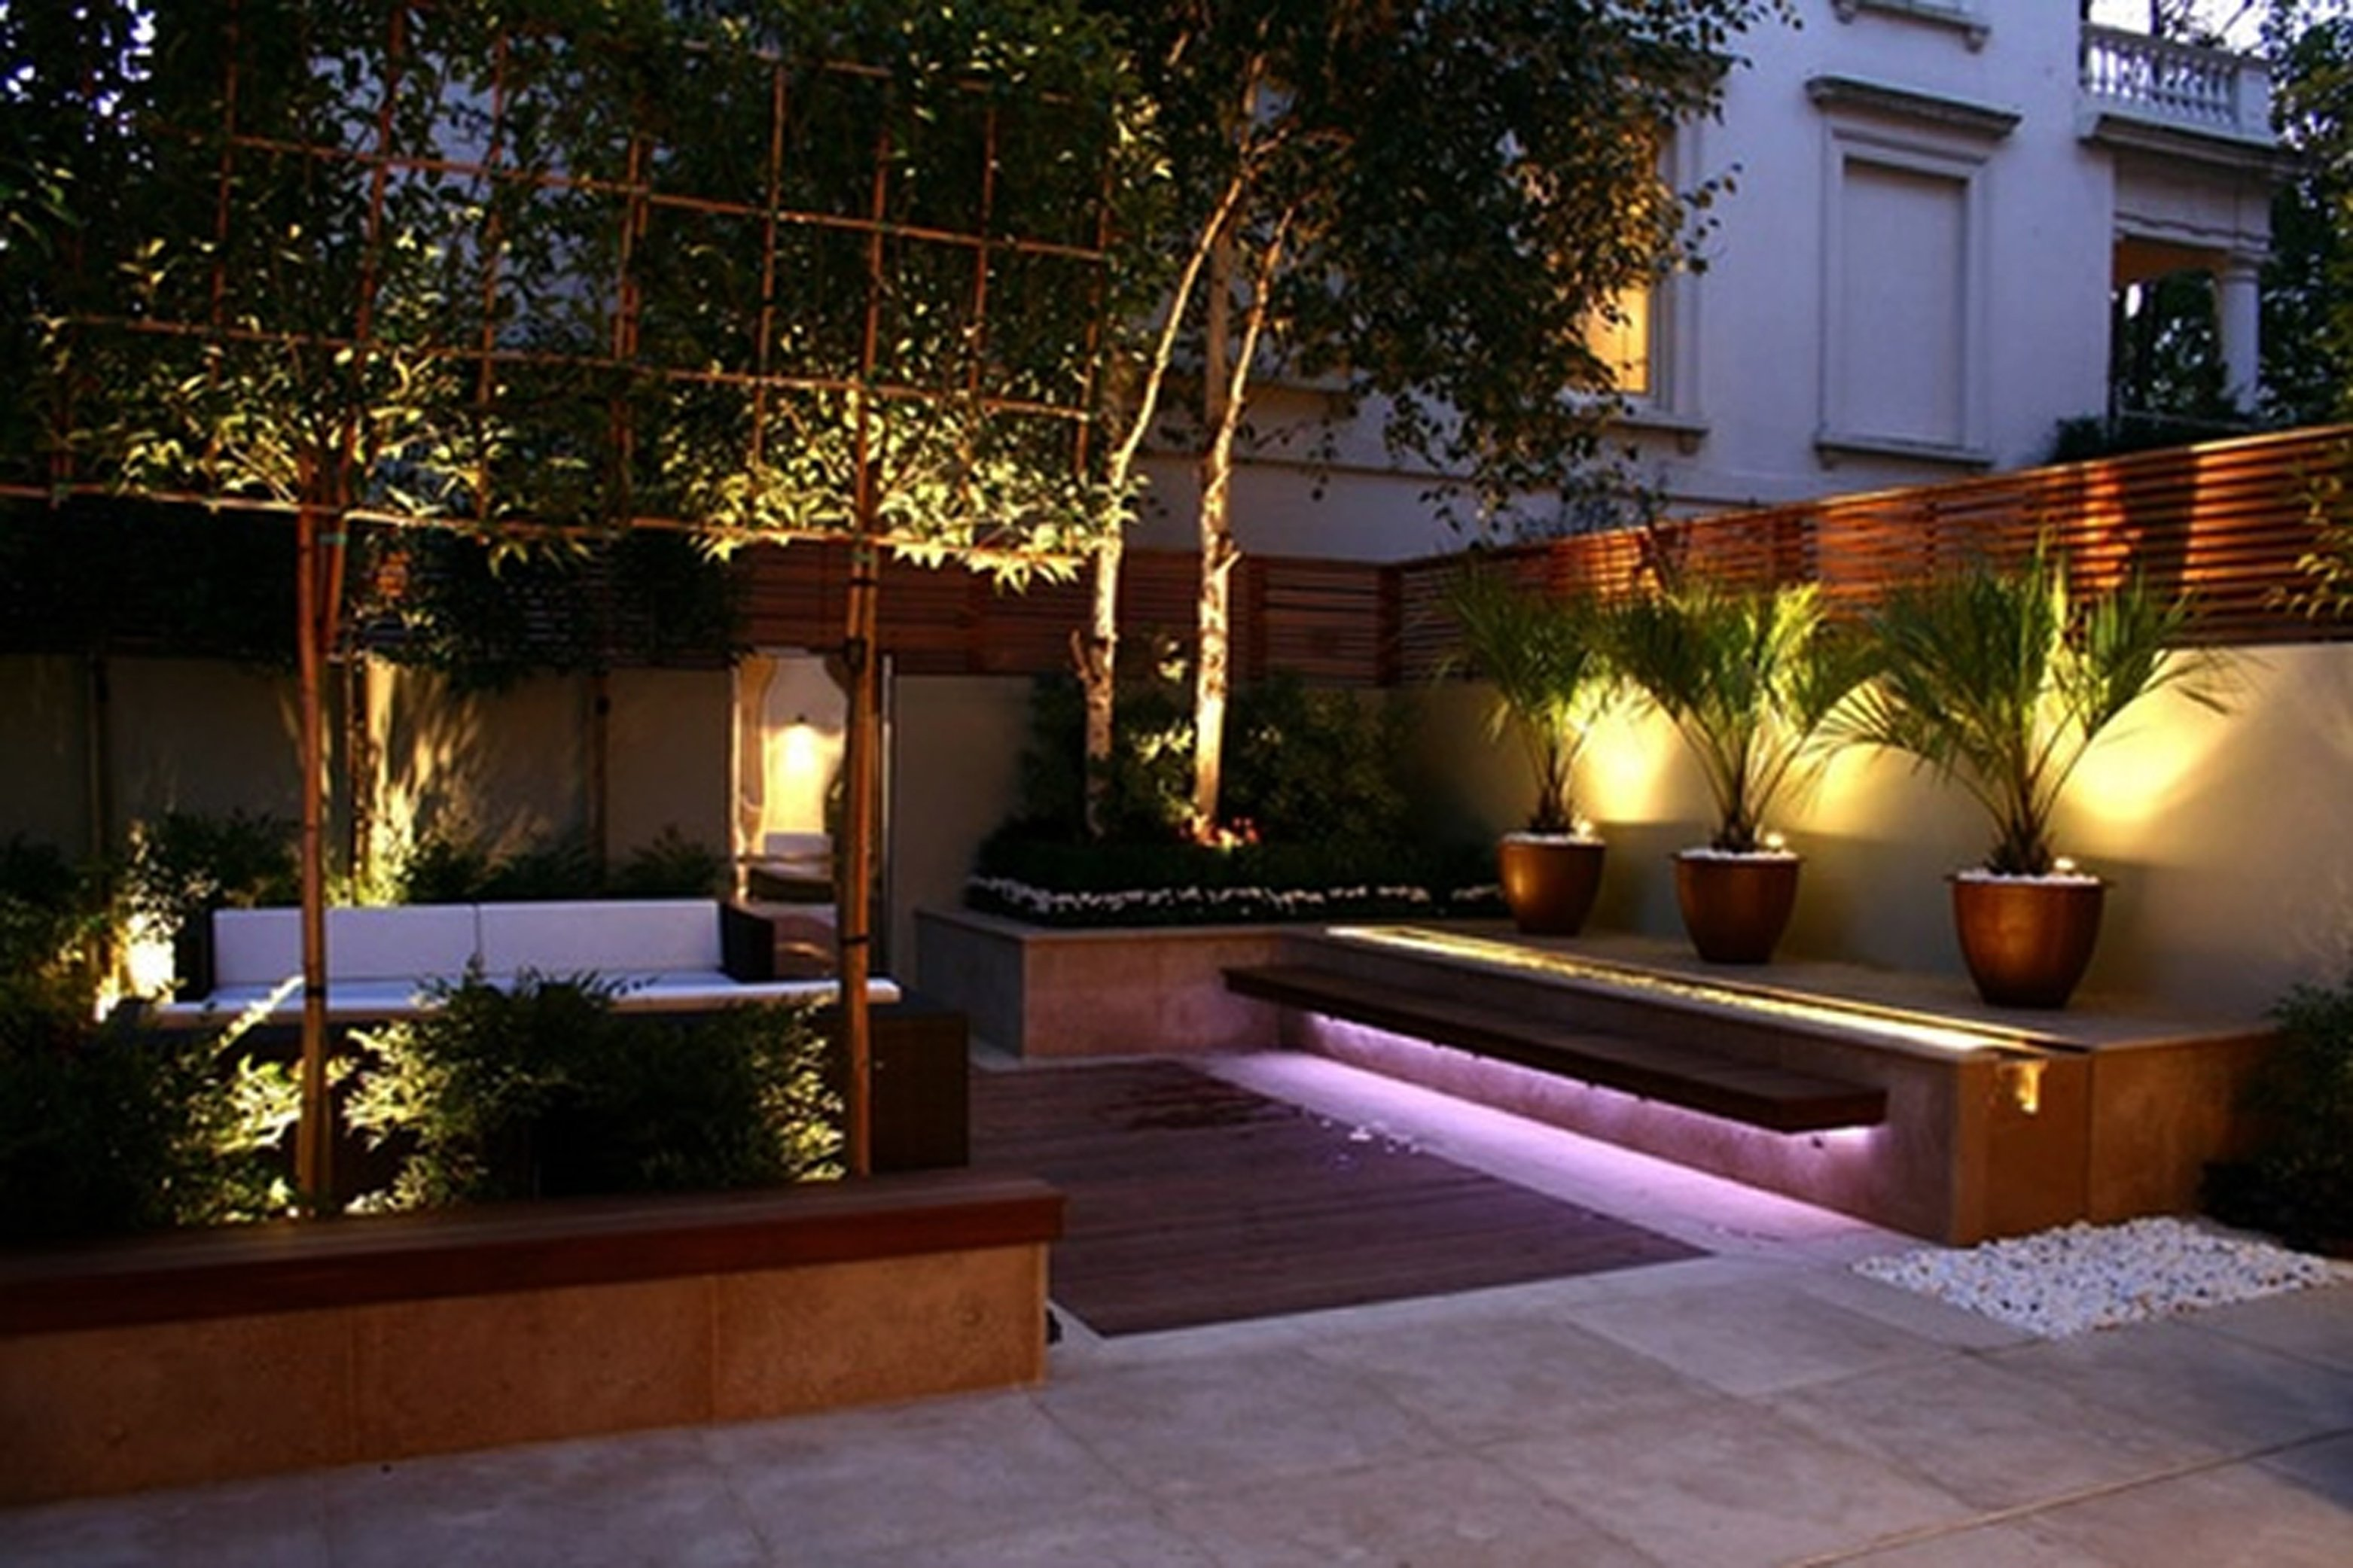 Porches Exteriores Ideas Para Decorar Exteriores En Primavera